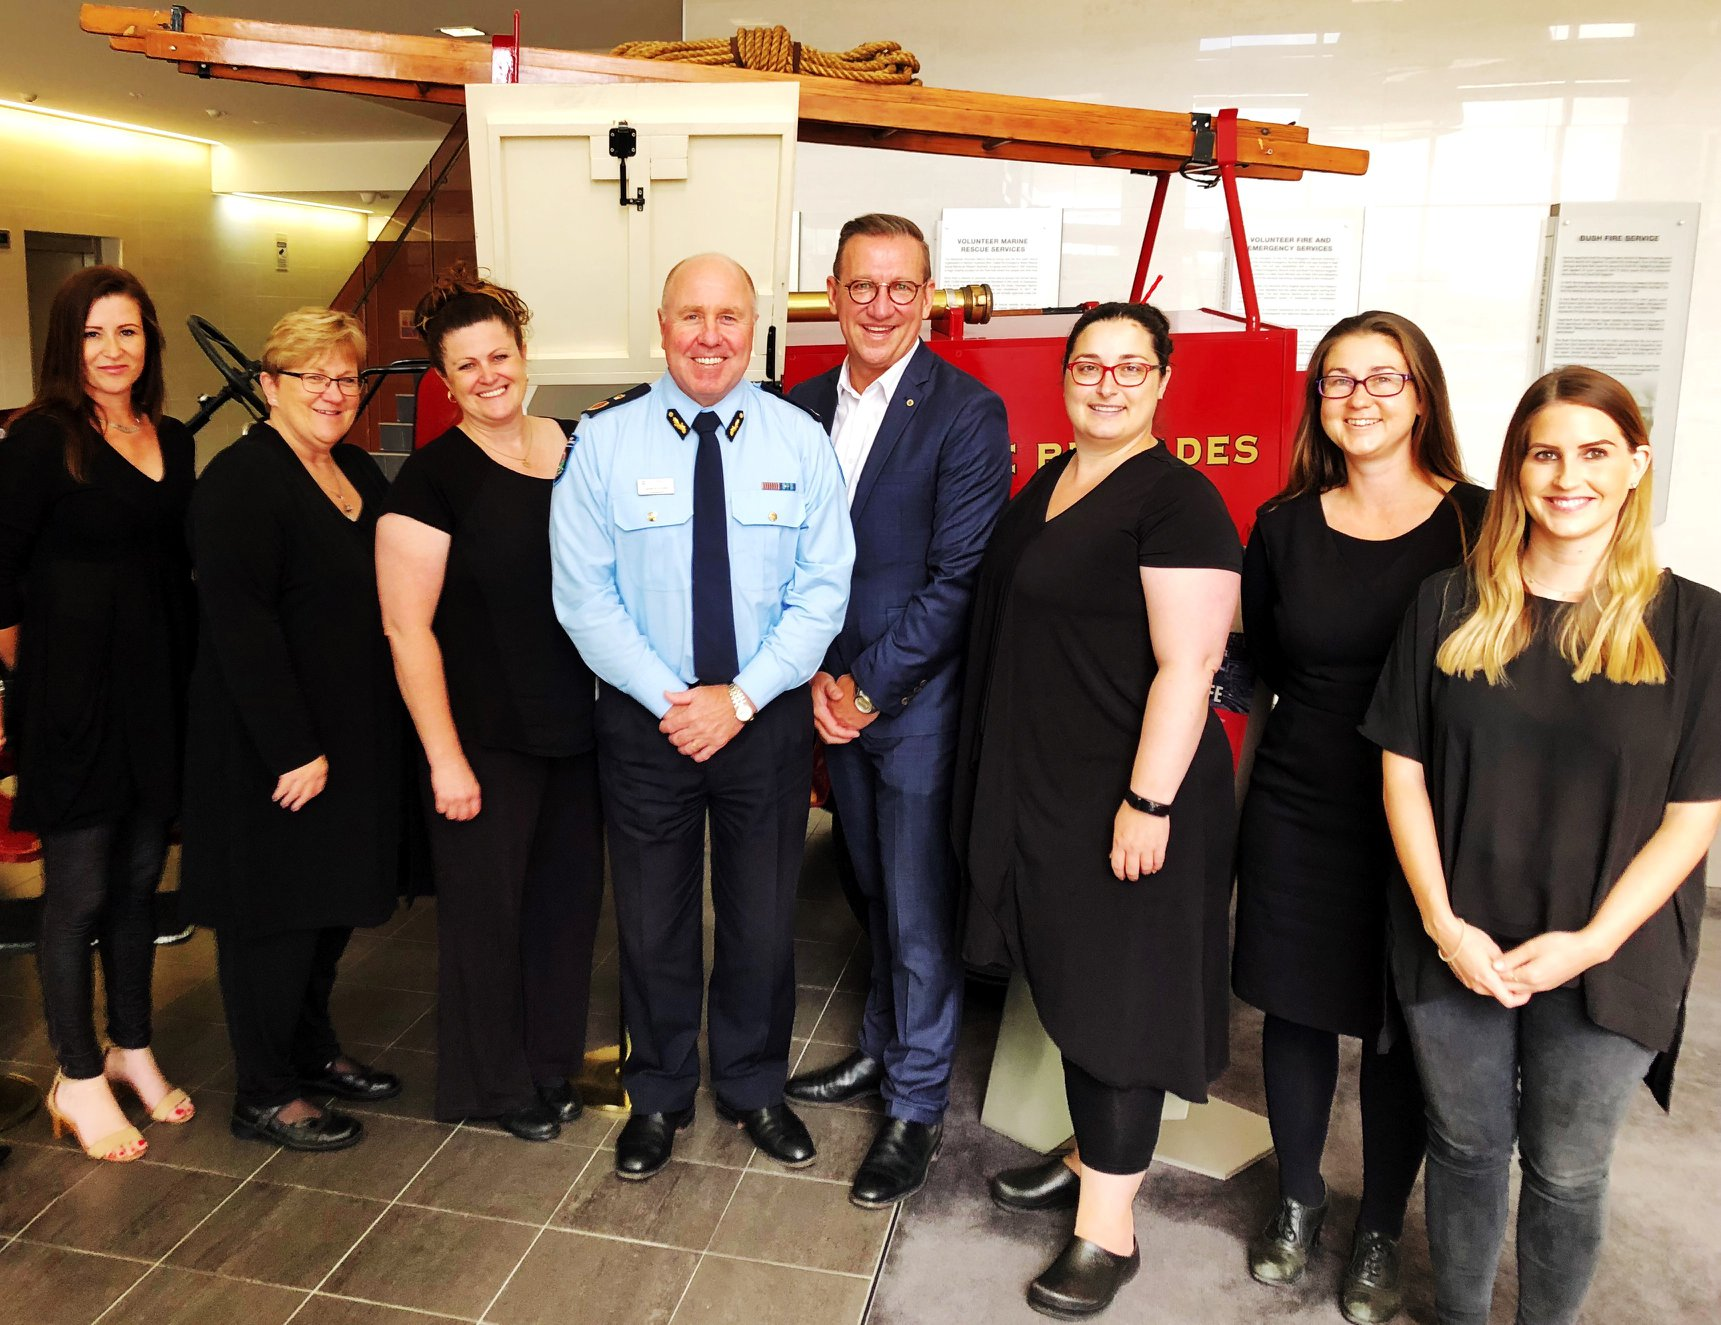 FES Commissioner Darren Klemm welcomed WA Deaf Society CEO David Gibson and the newly established Emergency Services Interpreter Team. Photo: Facebook